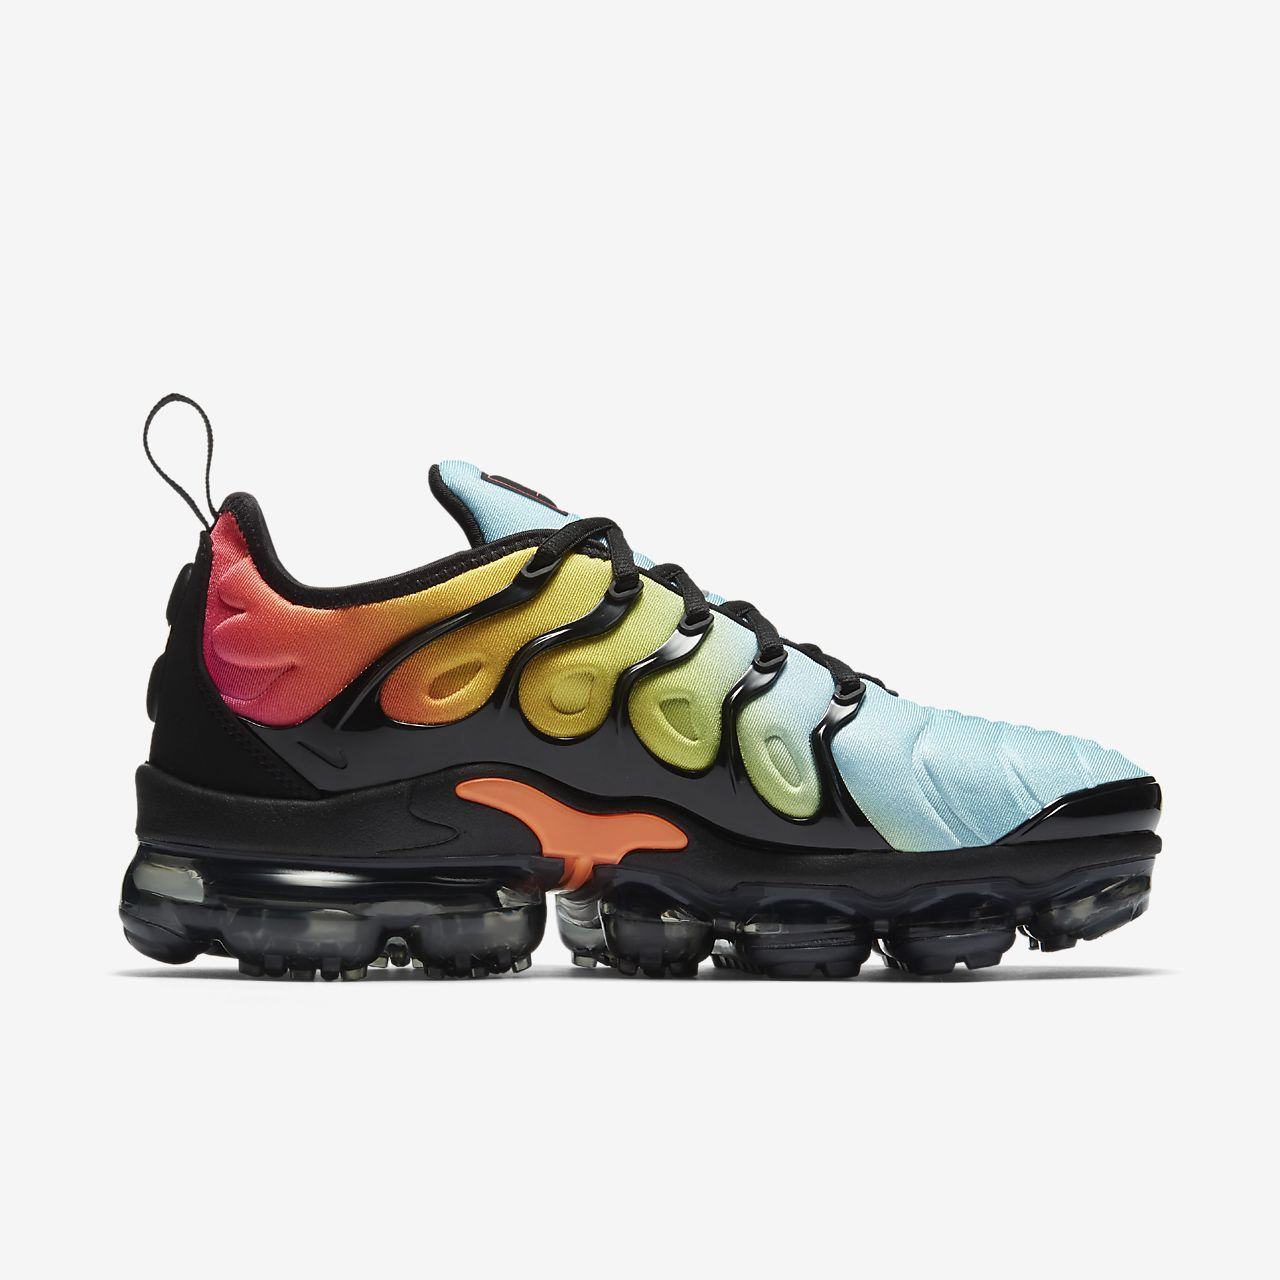 Nike Air VaporMax Plus Women's Shoe, Black/Bleached Aqua/Vivid Sulfur